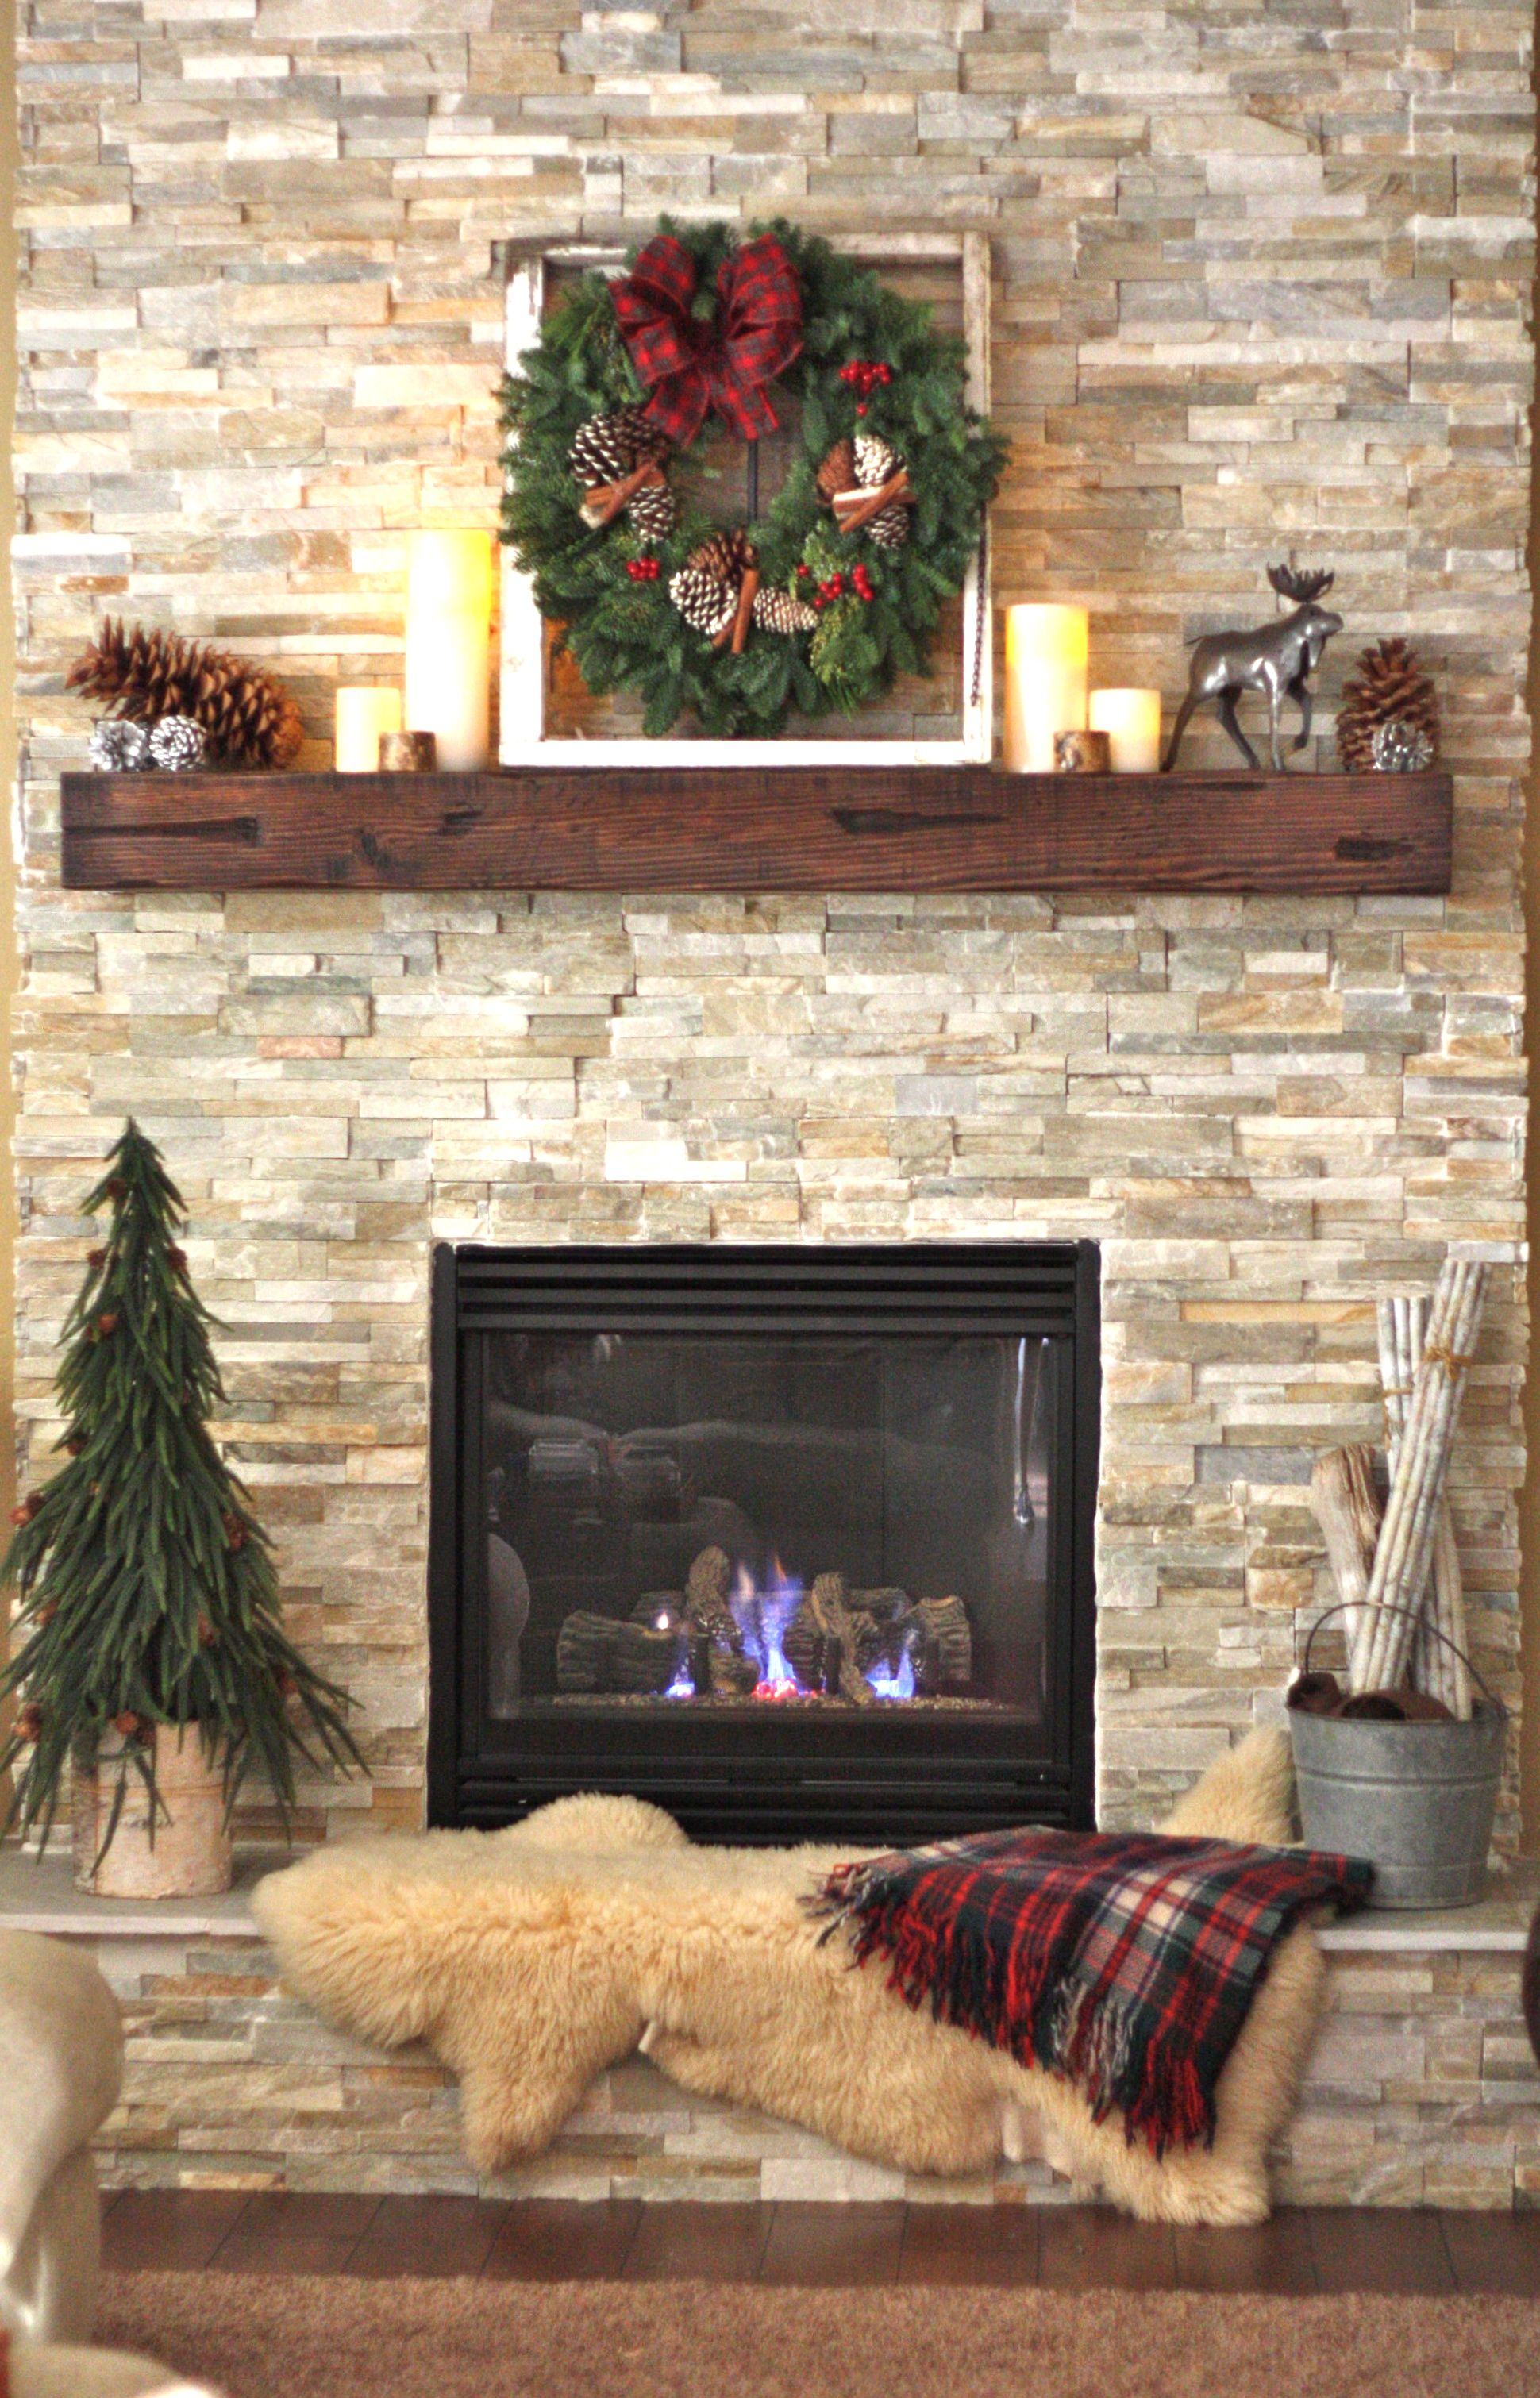 How To Decorate Fireplace Wall I 39d Like To Have A Mantle Installed On My Brick Fireplace